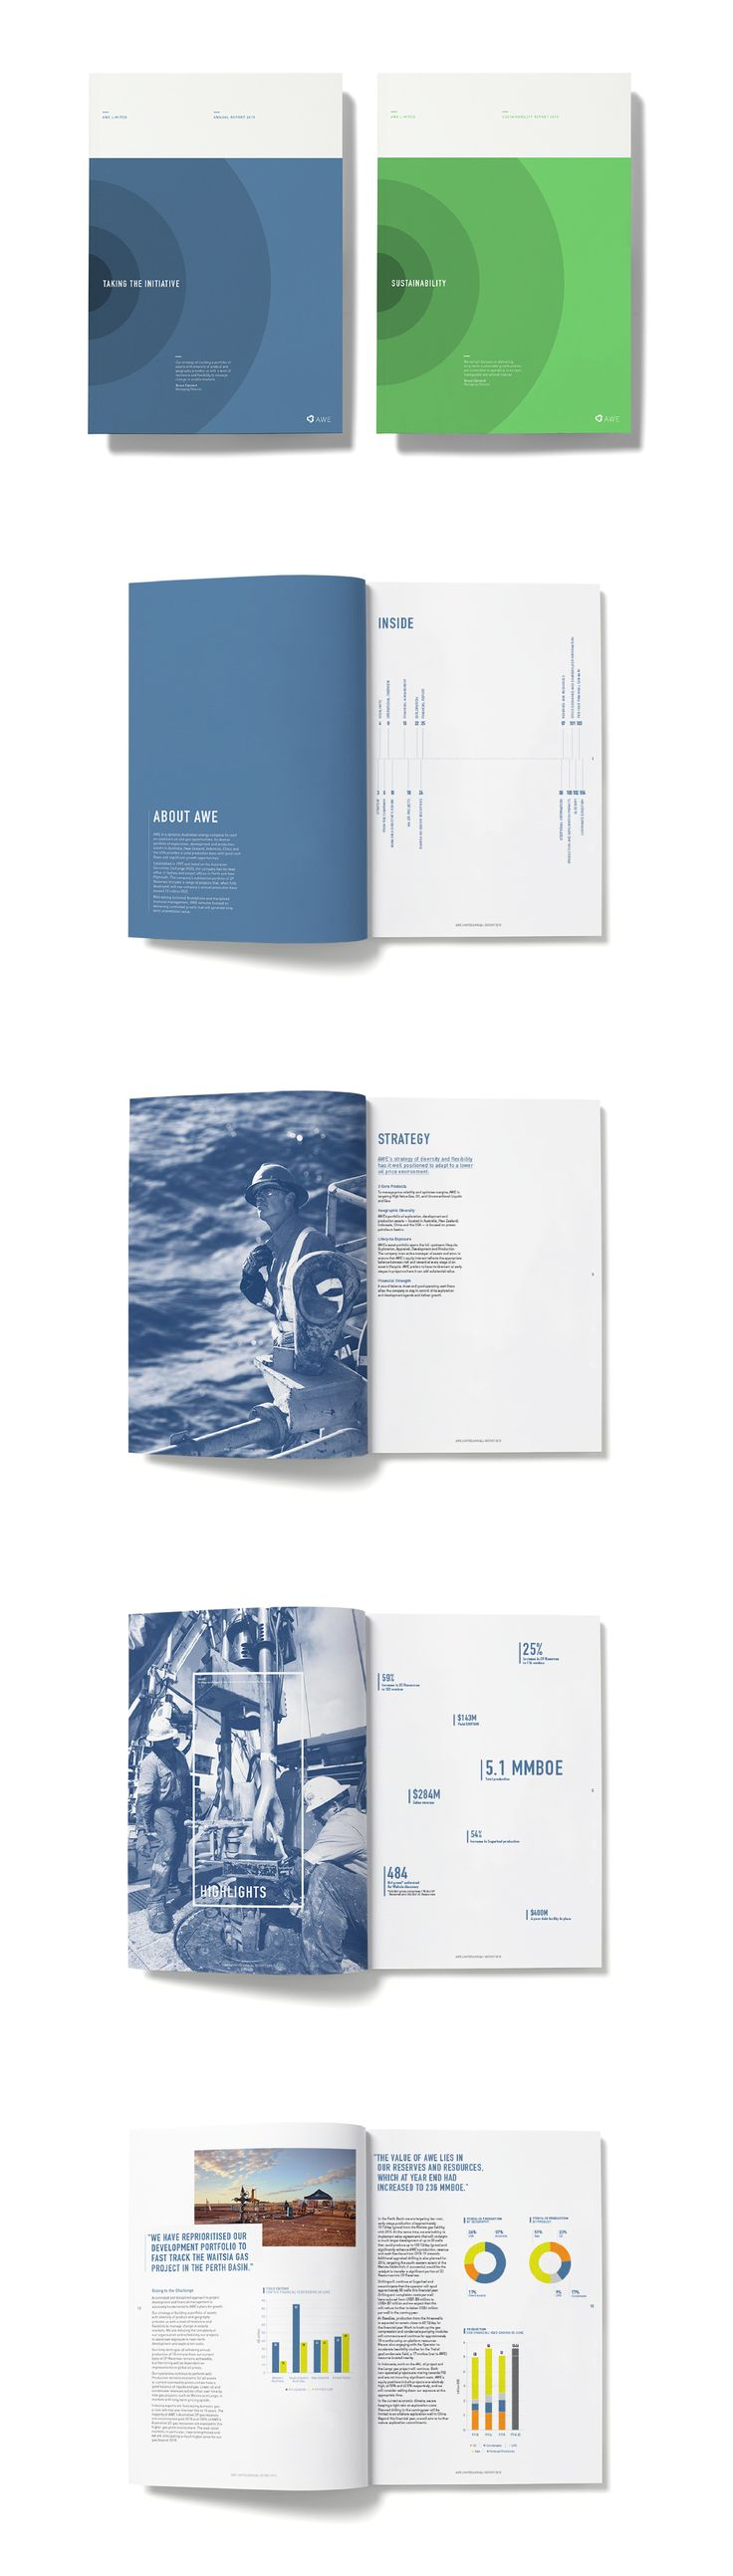 AWE Annual Report 2015 by Ascender